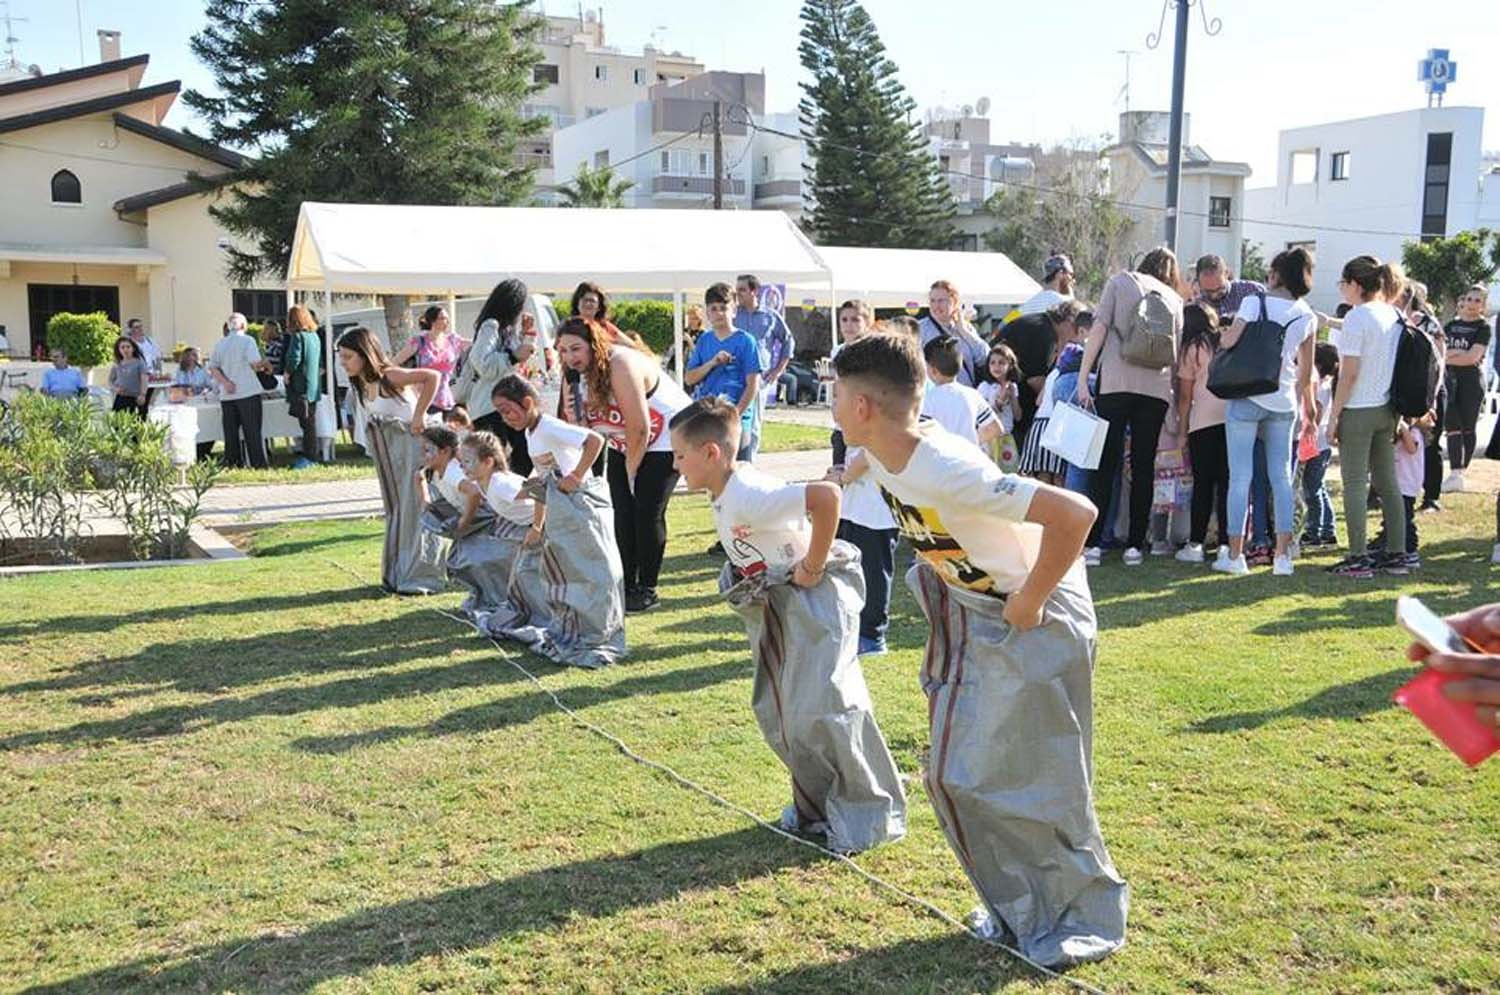 Traditional_Games_Festival_Engomi_Municipality_15April2018_5